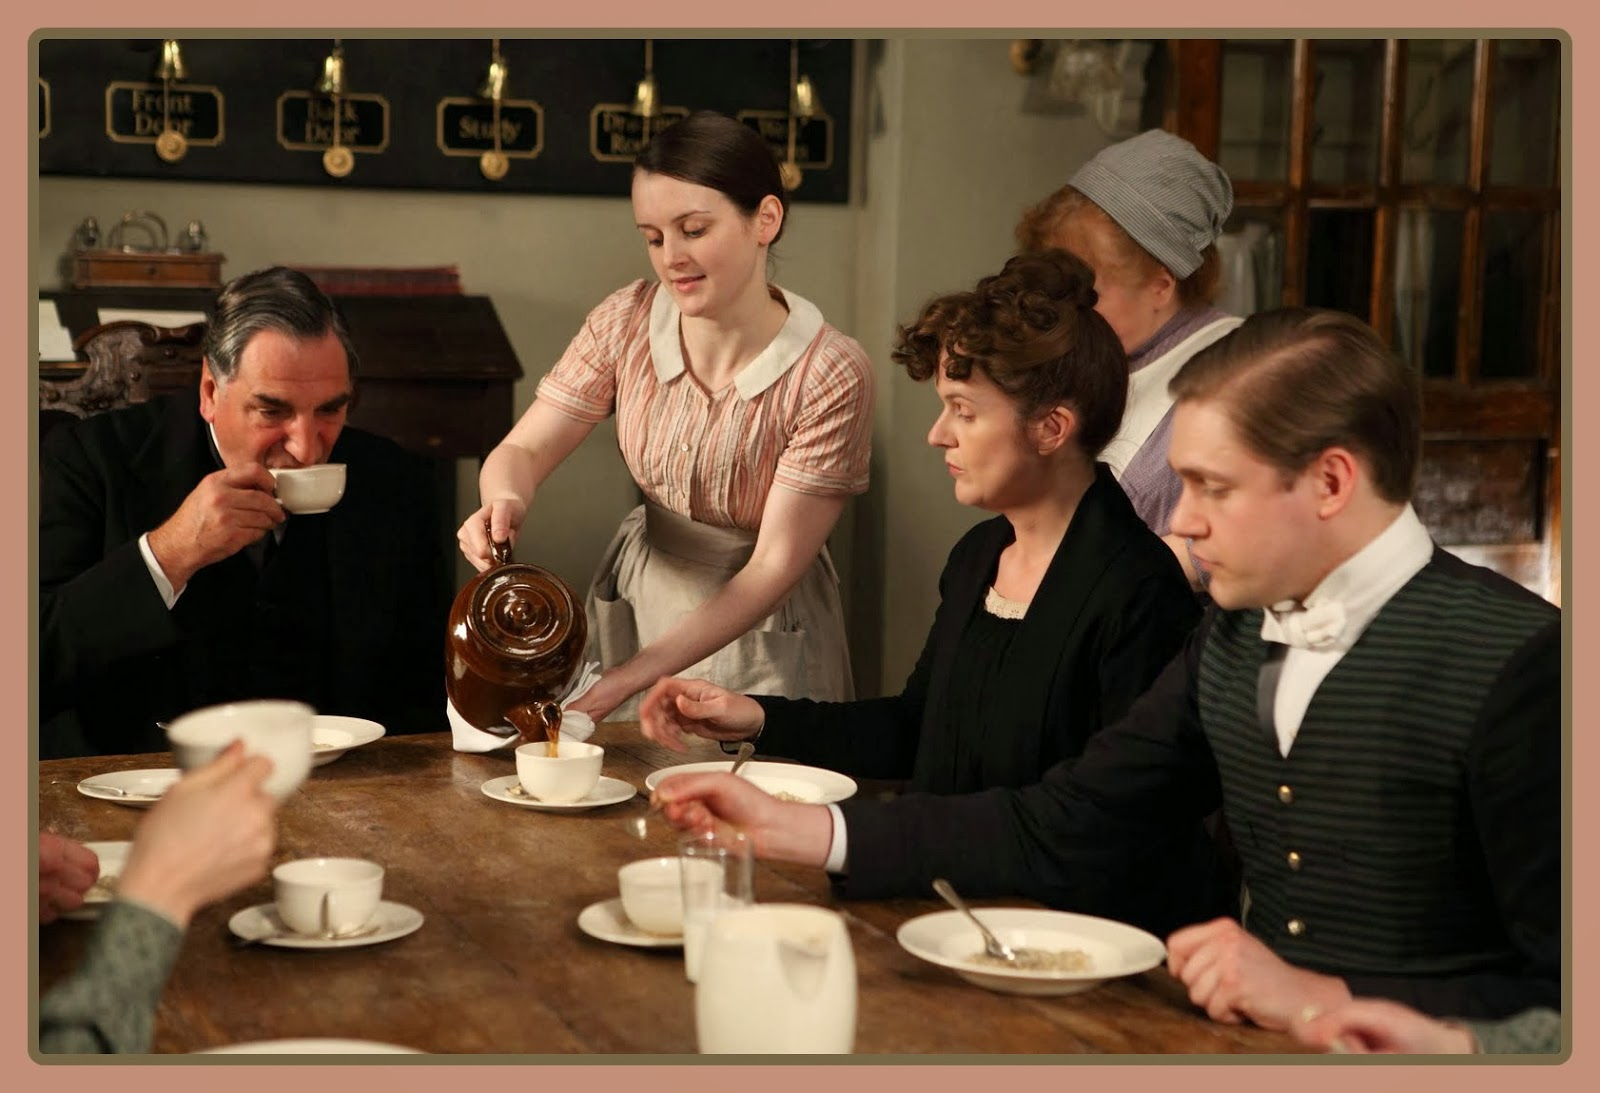 vvb32 reads: Downton Abbey: Downstairs